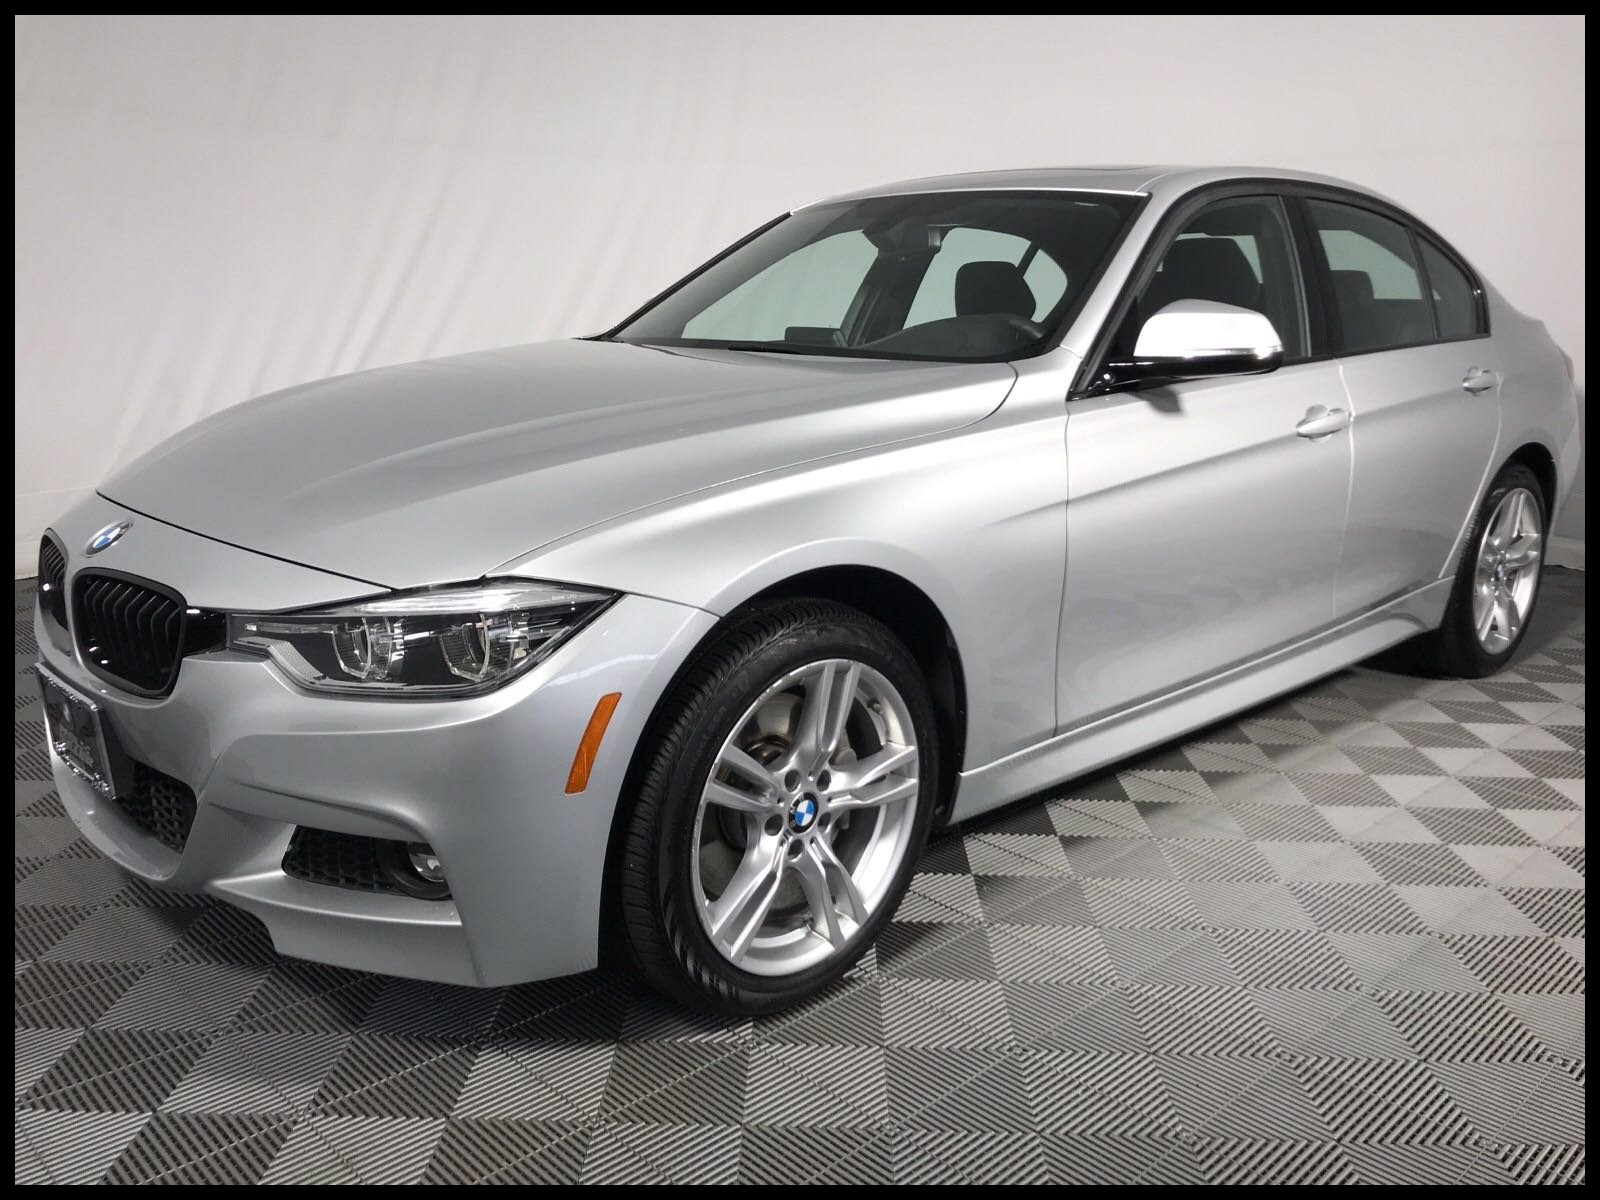 Bmw 328xi Lease Price Elegant Bmw 328i Lease Deals Pre Owned 2018 Bmw 3 Series 4dr